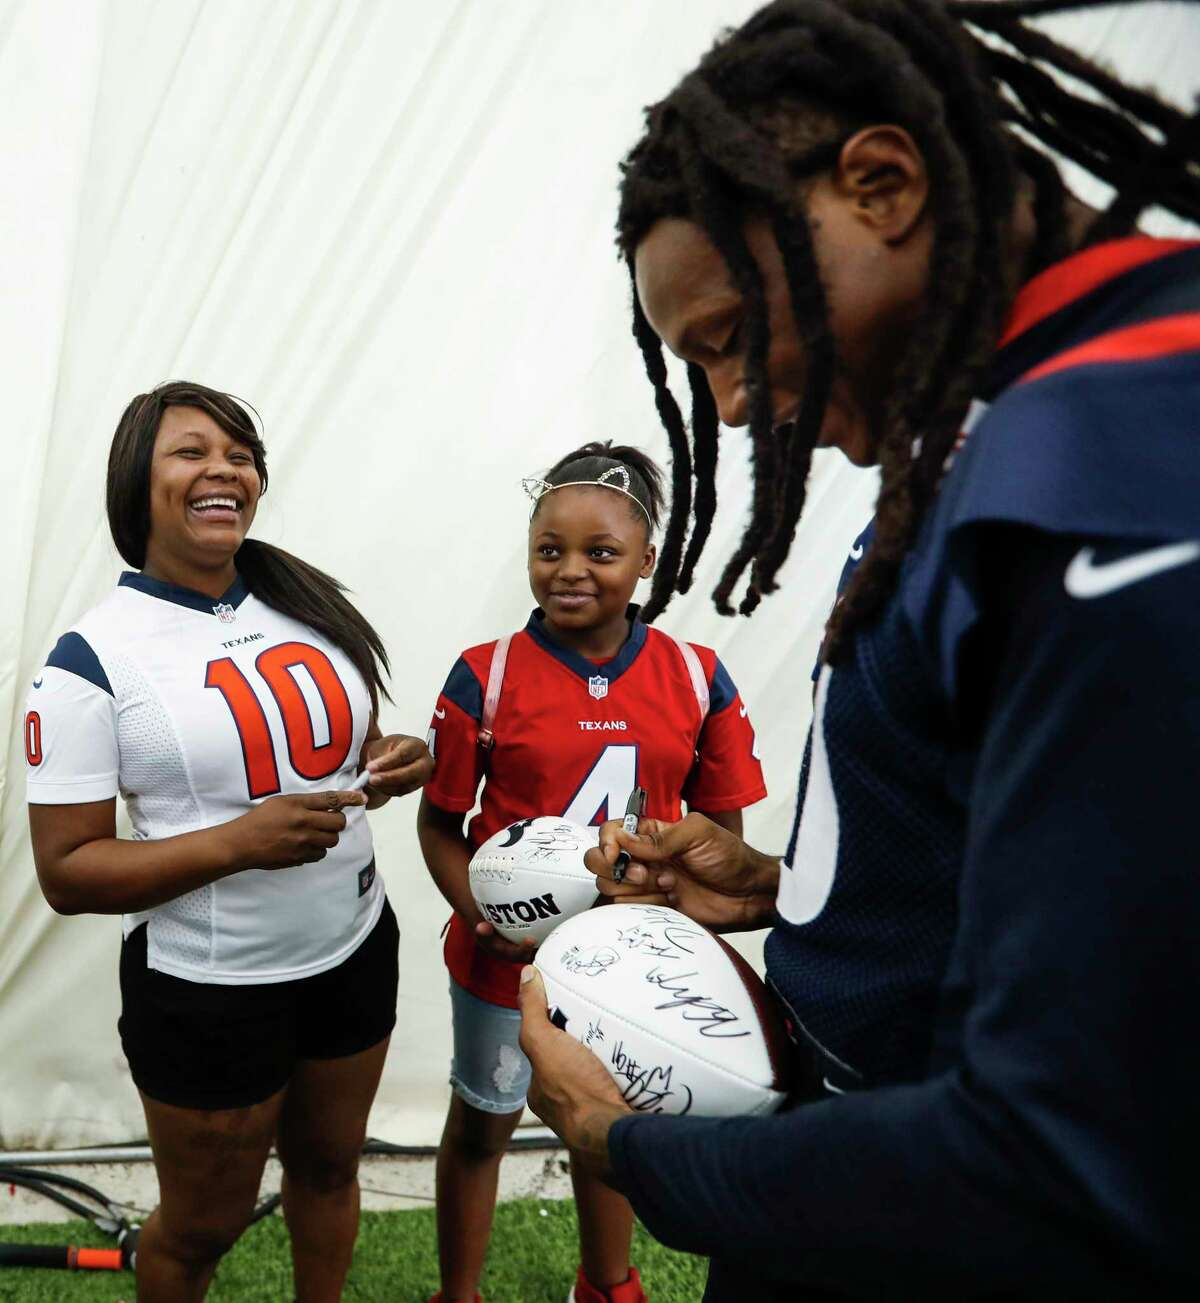 Hurricane Harvey flood victim Eraina Garrett, left,, and Mya Wagner smile as they meet Houston Texans wide receiver DeAndre Hopkins (10) as Texans players welcomed Harvey victims to training camp at the Methodist Training Center on Thursday, Aug. 23, 2018, in Houston.